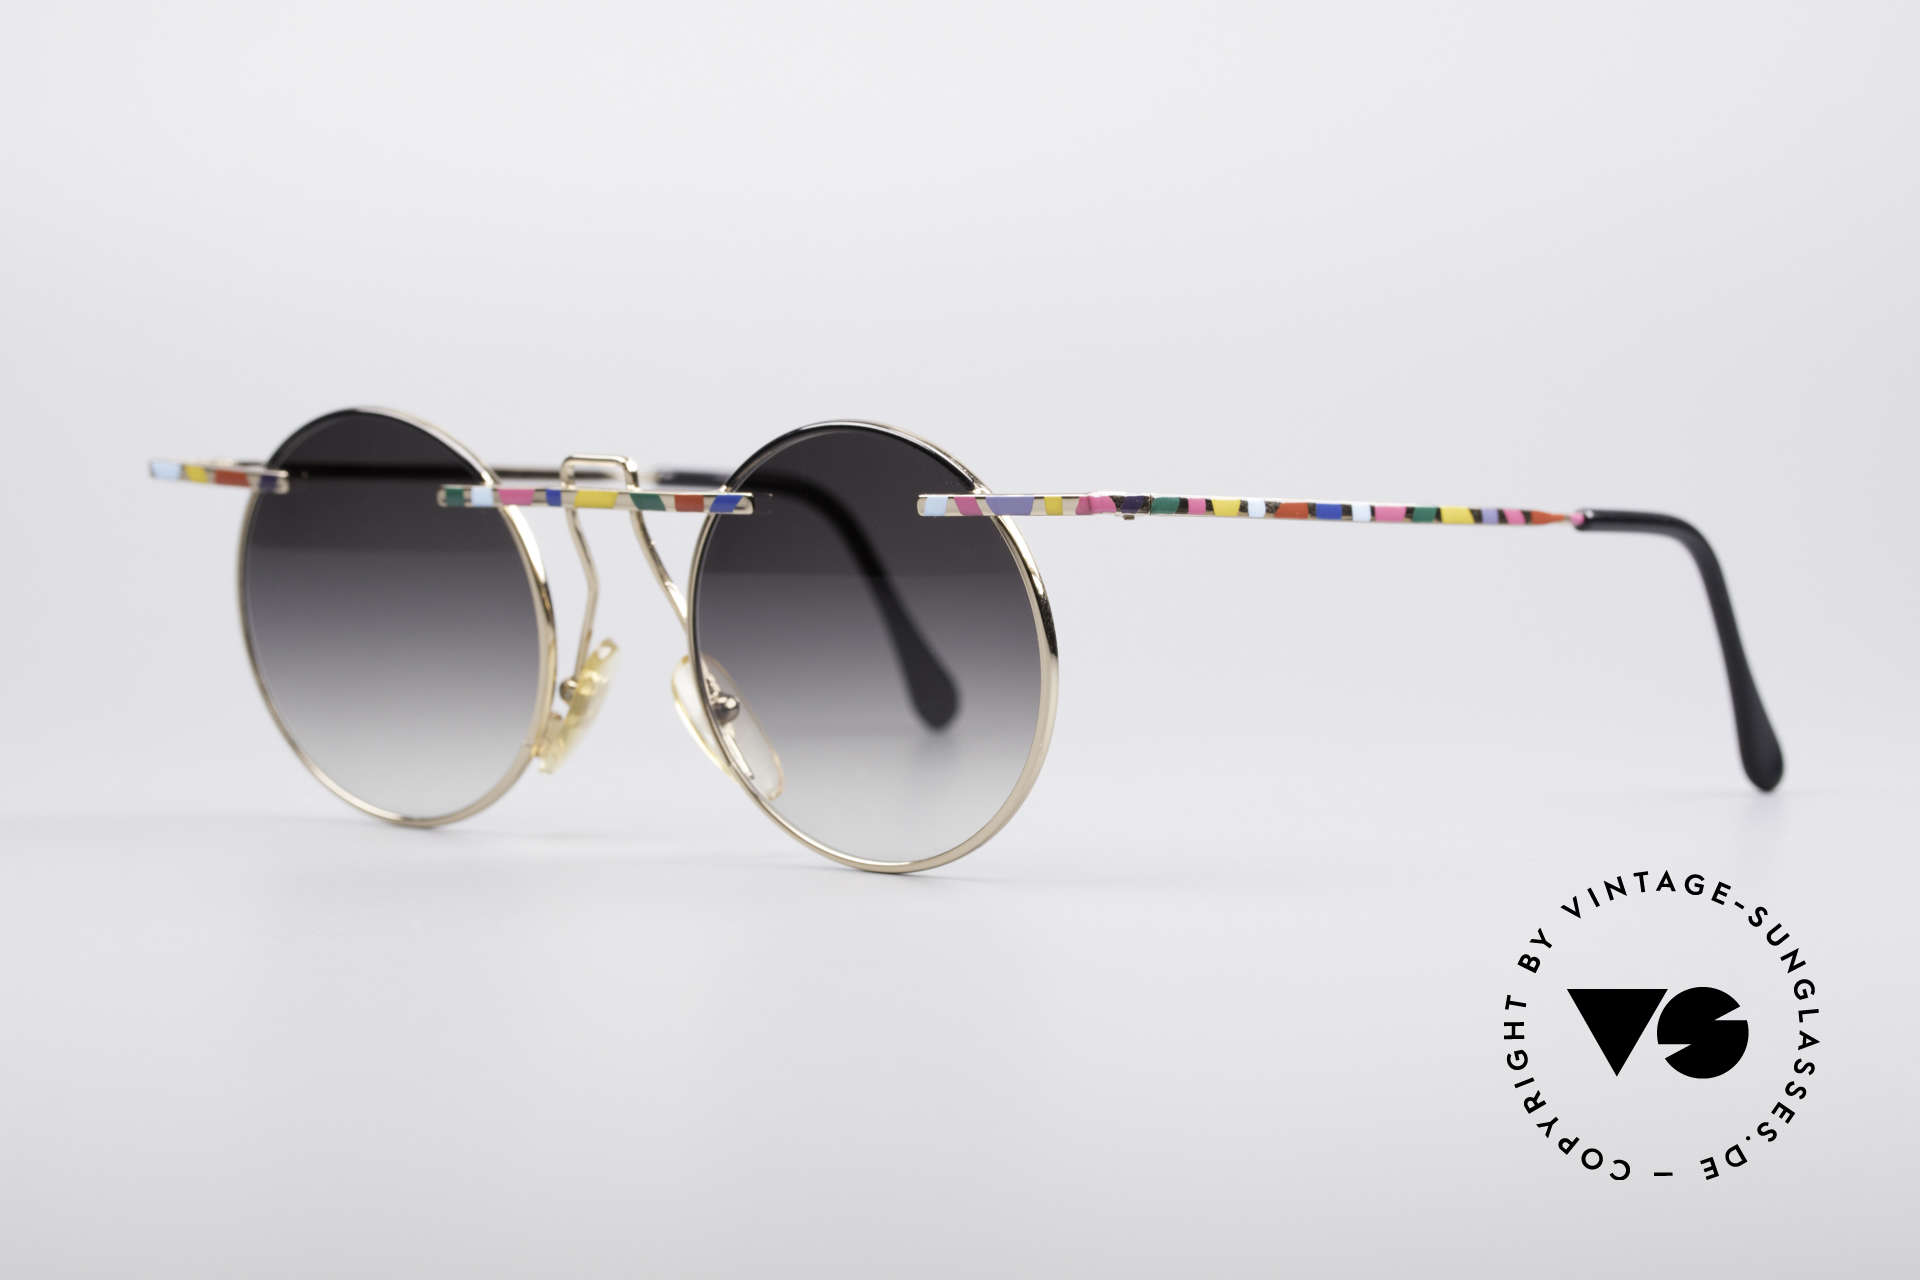 Taxi 222 by Casanova 80's Art Shades, represents the exuberance of the Venetian carnival, Made for Women